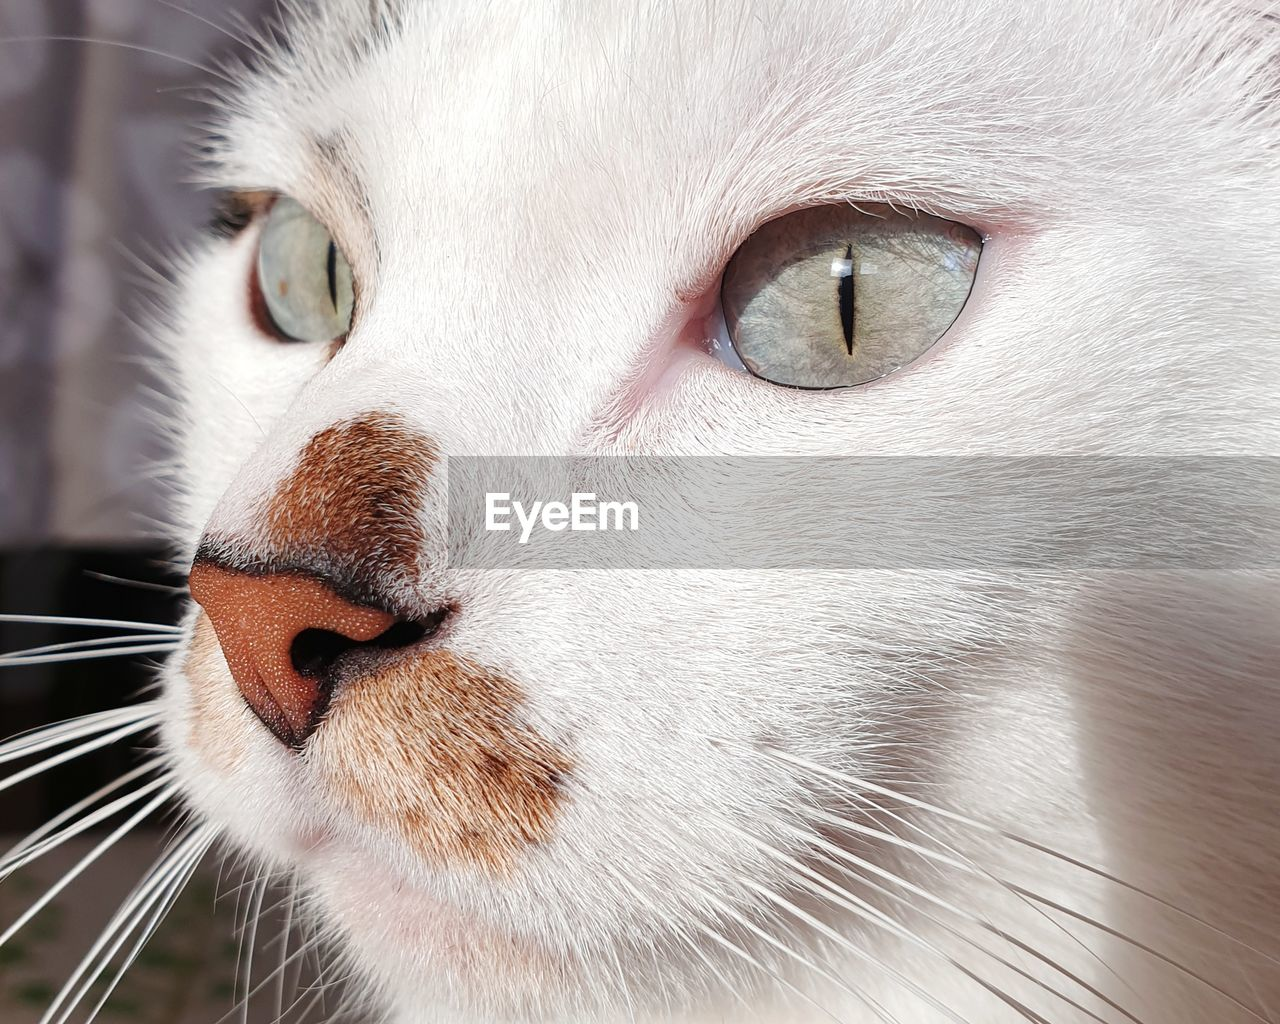 animal, pets, one animal, animal themes, domestic, domestic animals, feline, mammal, cat, close-up, domestic cat, vertebrate, animal body part, whisker, animal head, no people, eye, animal eye, looking, focus on foreground, animal nose, snout